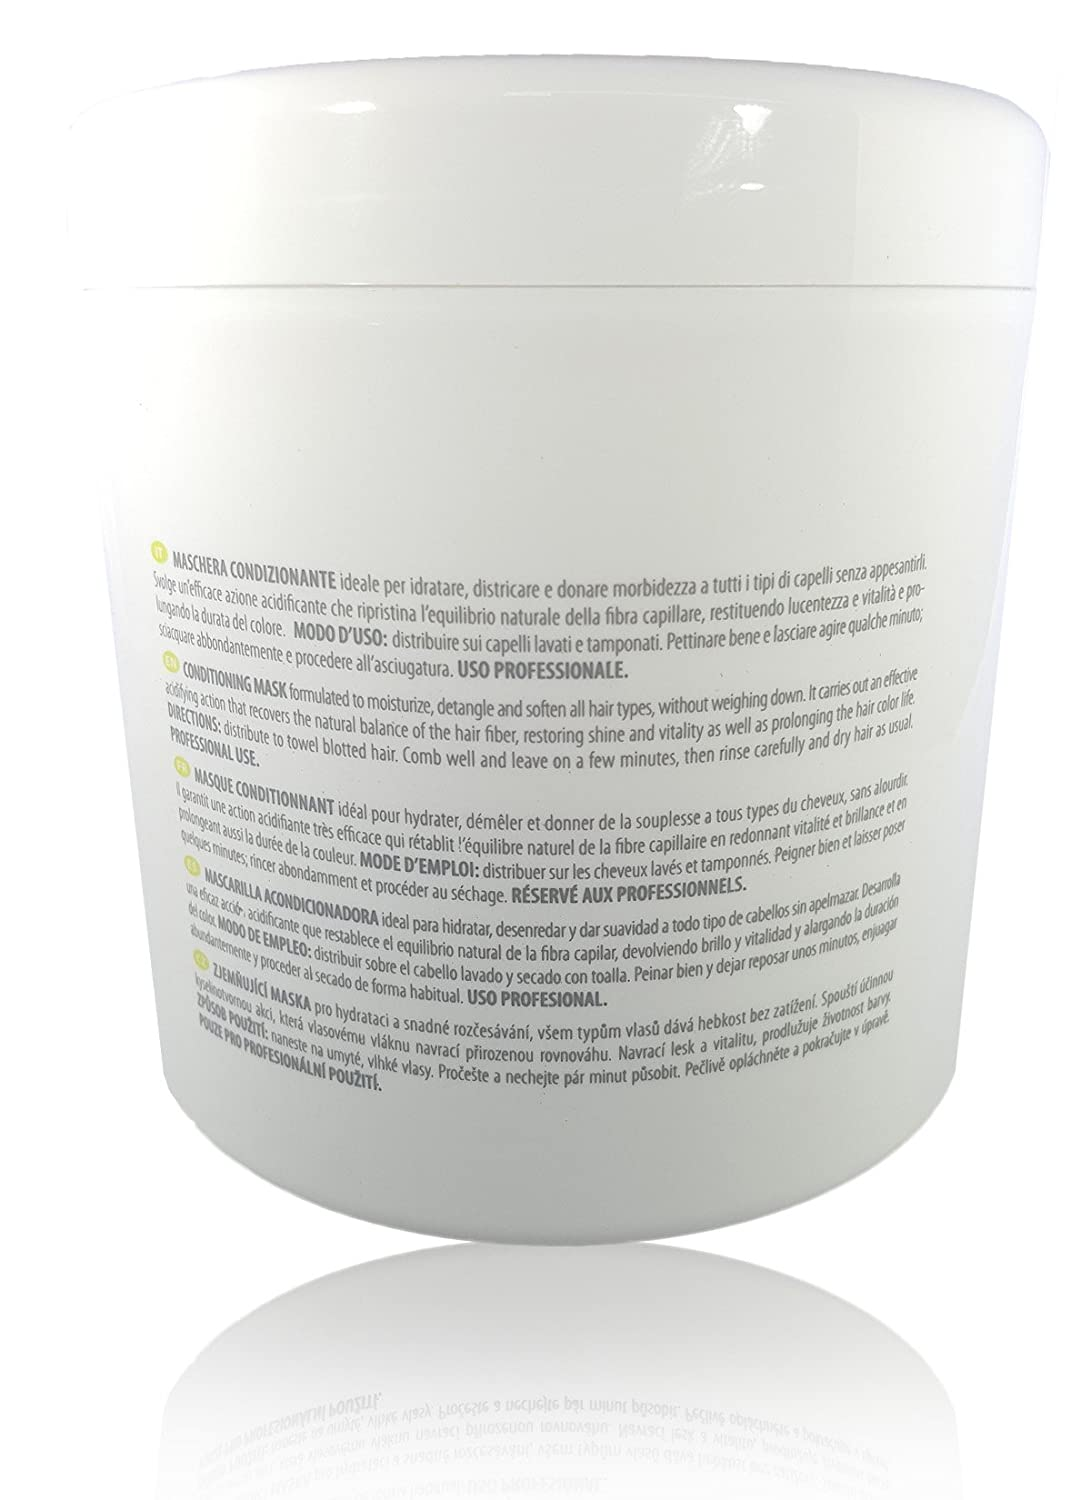 Amazon.com : Vitael Acidifying Conditioning Hair Mask For All Types of Hair 33.81 Fl. Oz : Beauty